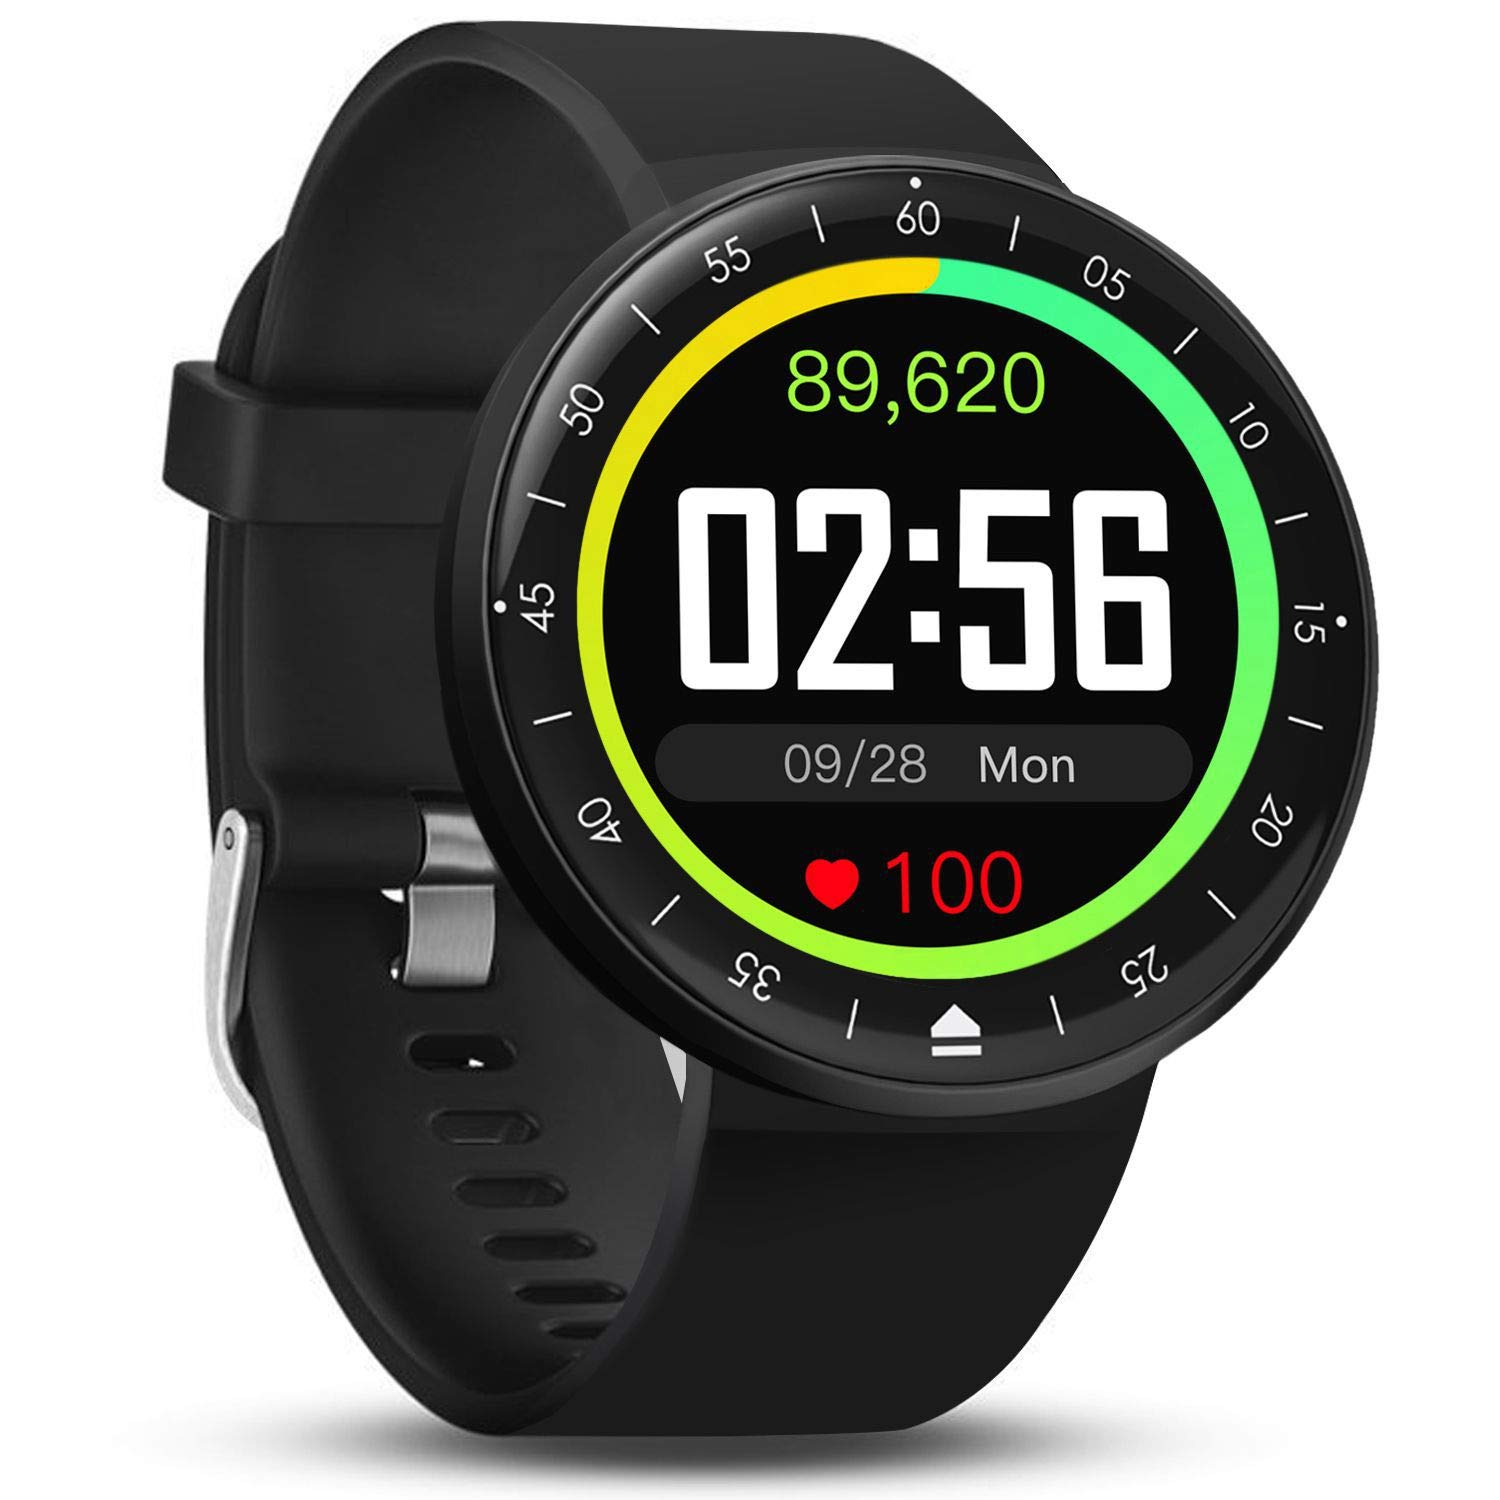 FITVII Smart Watch, Full Touch Screen Fitness Tracker with DIY Home Screen, IP68 Waterproof Heart Rate & Blood Pressure Monitor, 9 Sport Mode Activity Tracker for iPhone & Android for Men Women Kids